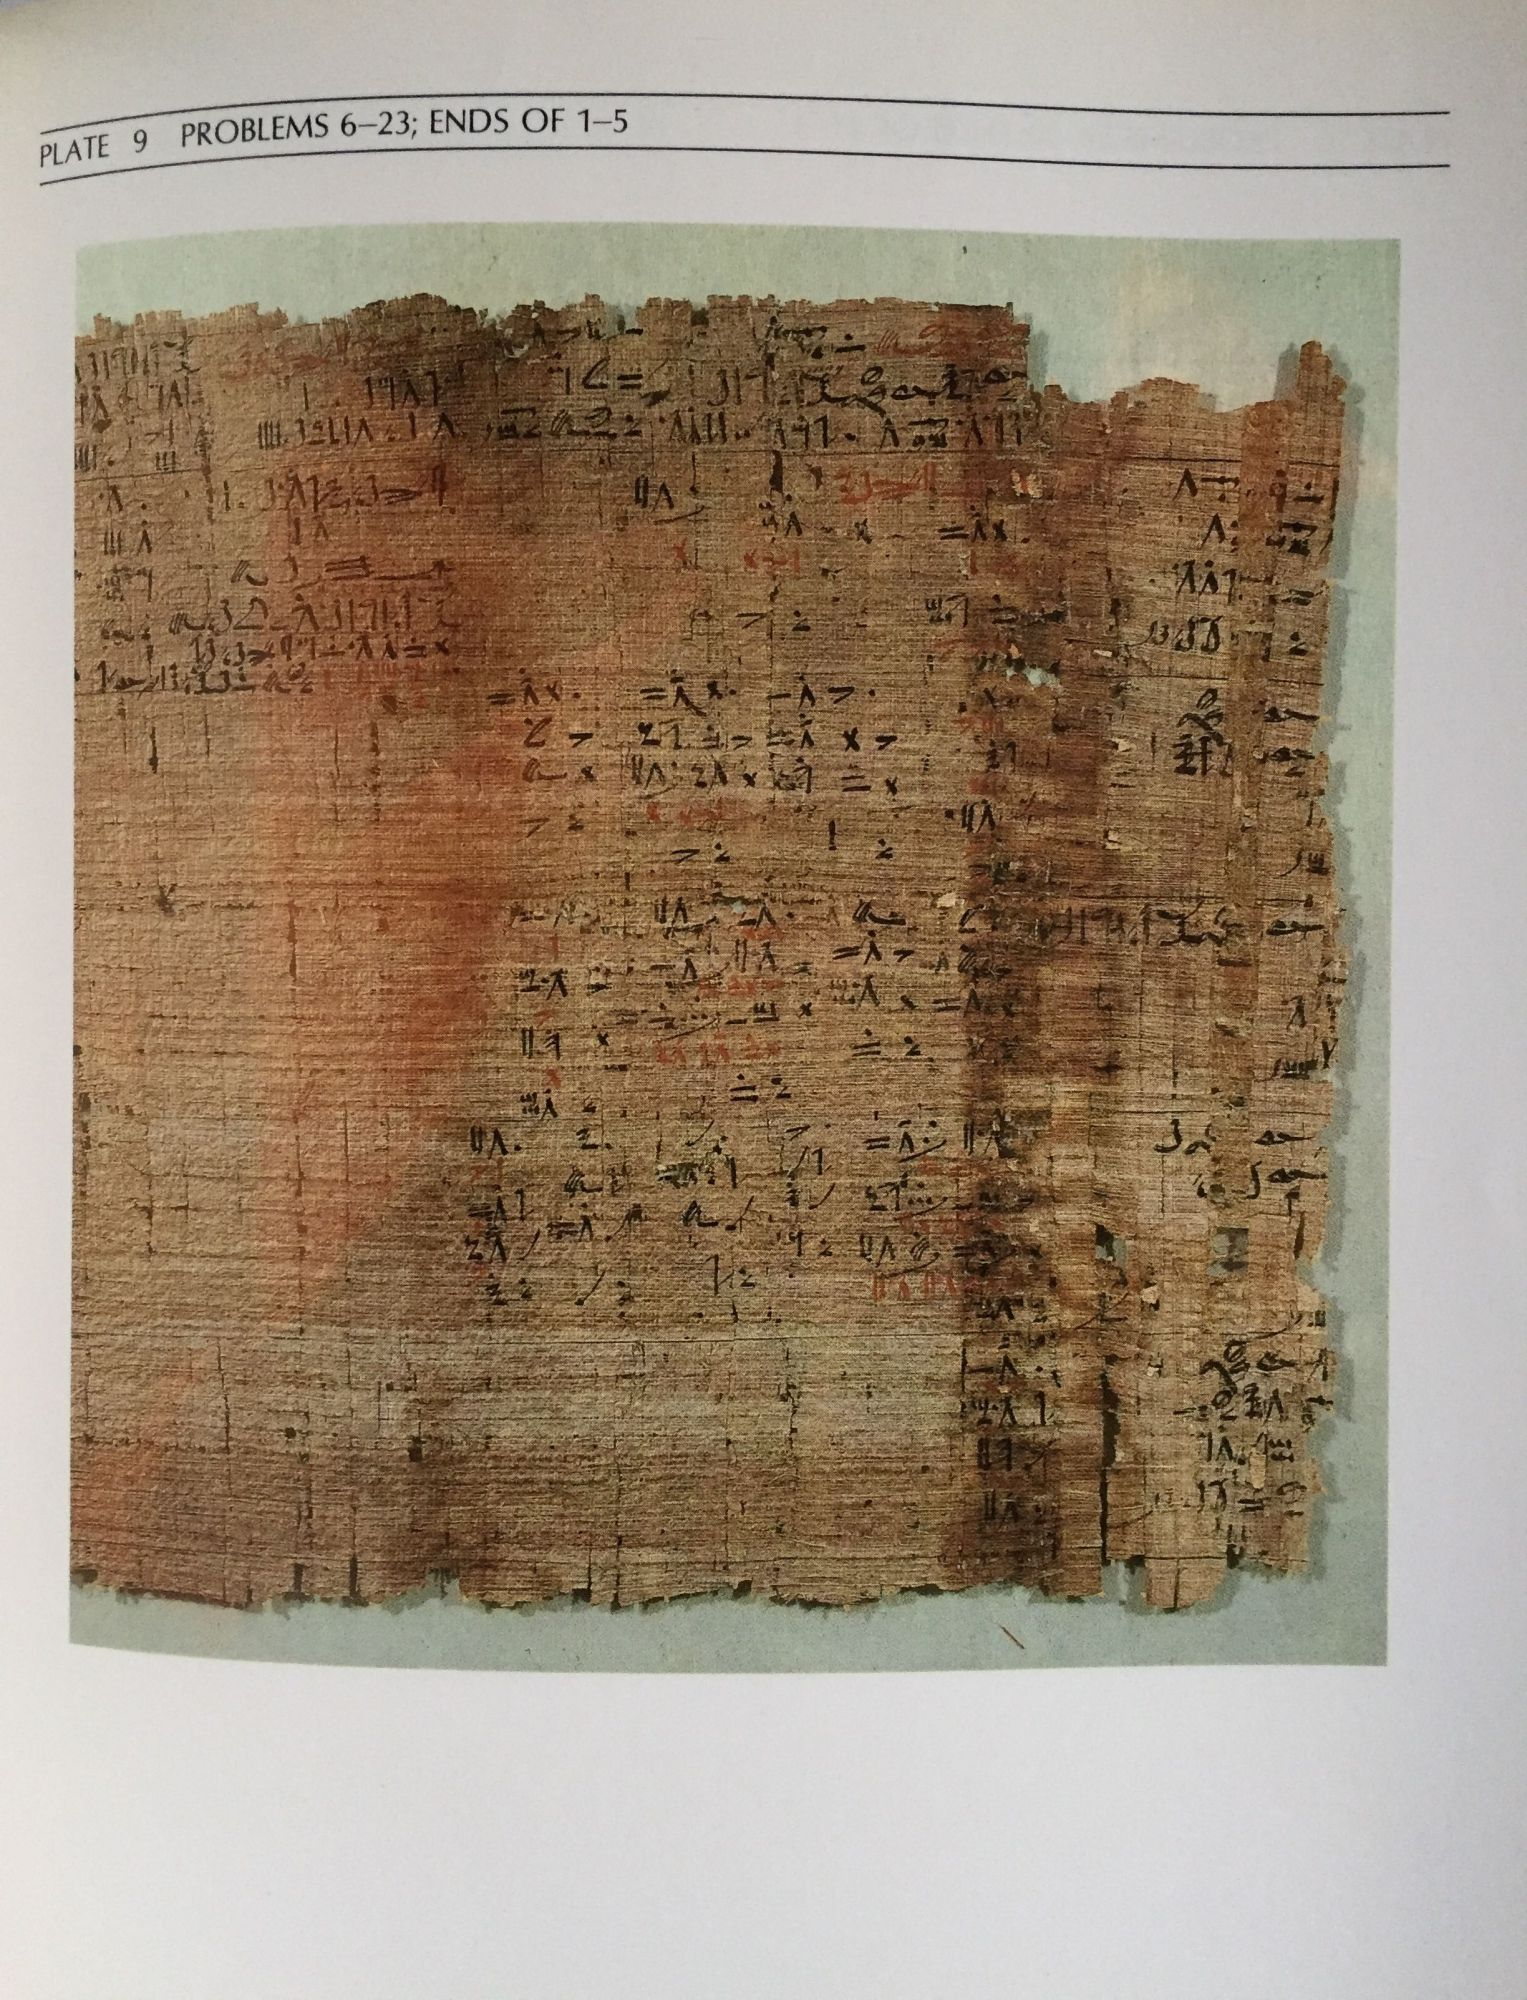 The Rhind mathematical papyrus  An ancient Egyptian text by ROBINS Gay -  SHUTE Charles on Meretseger Books